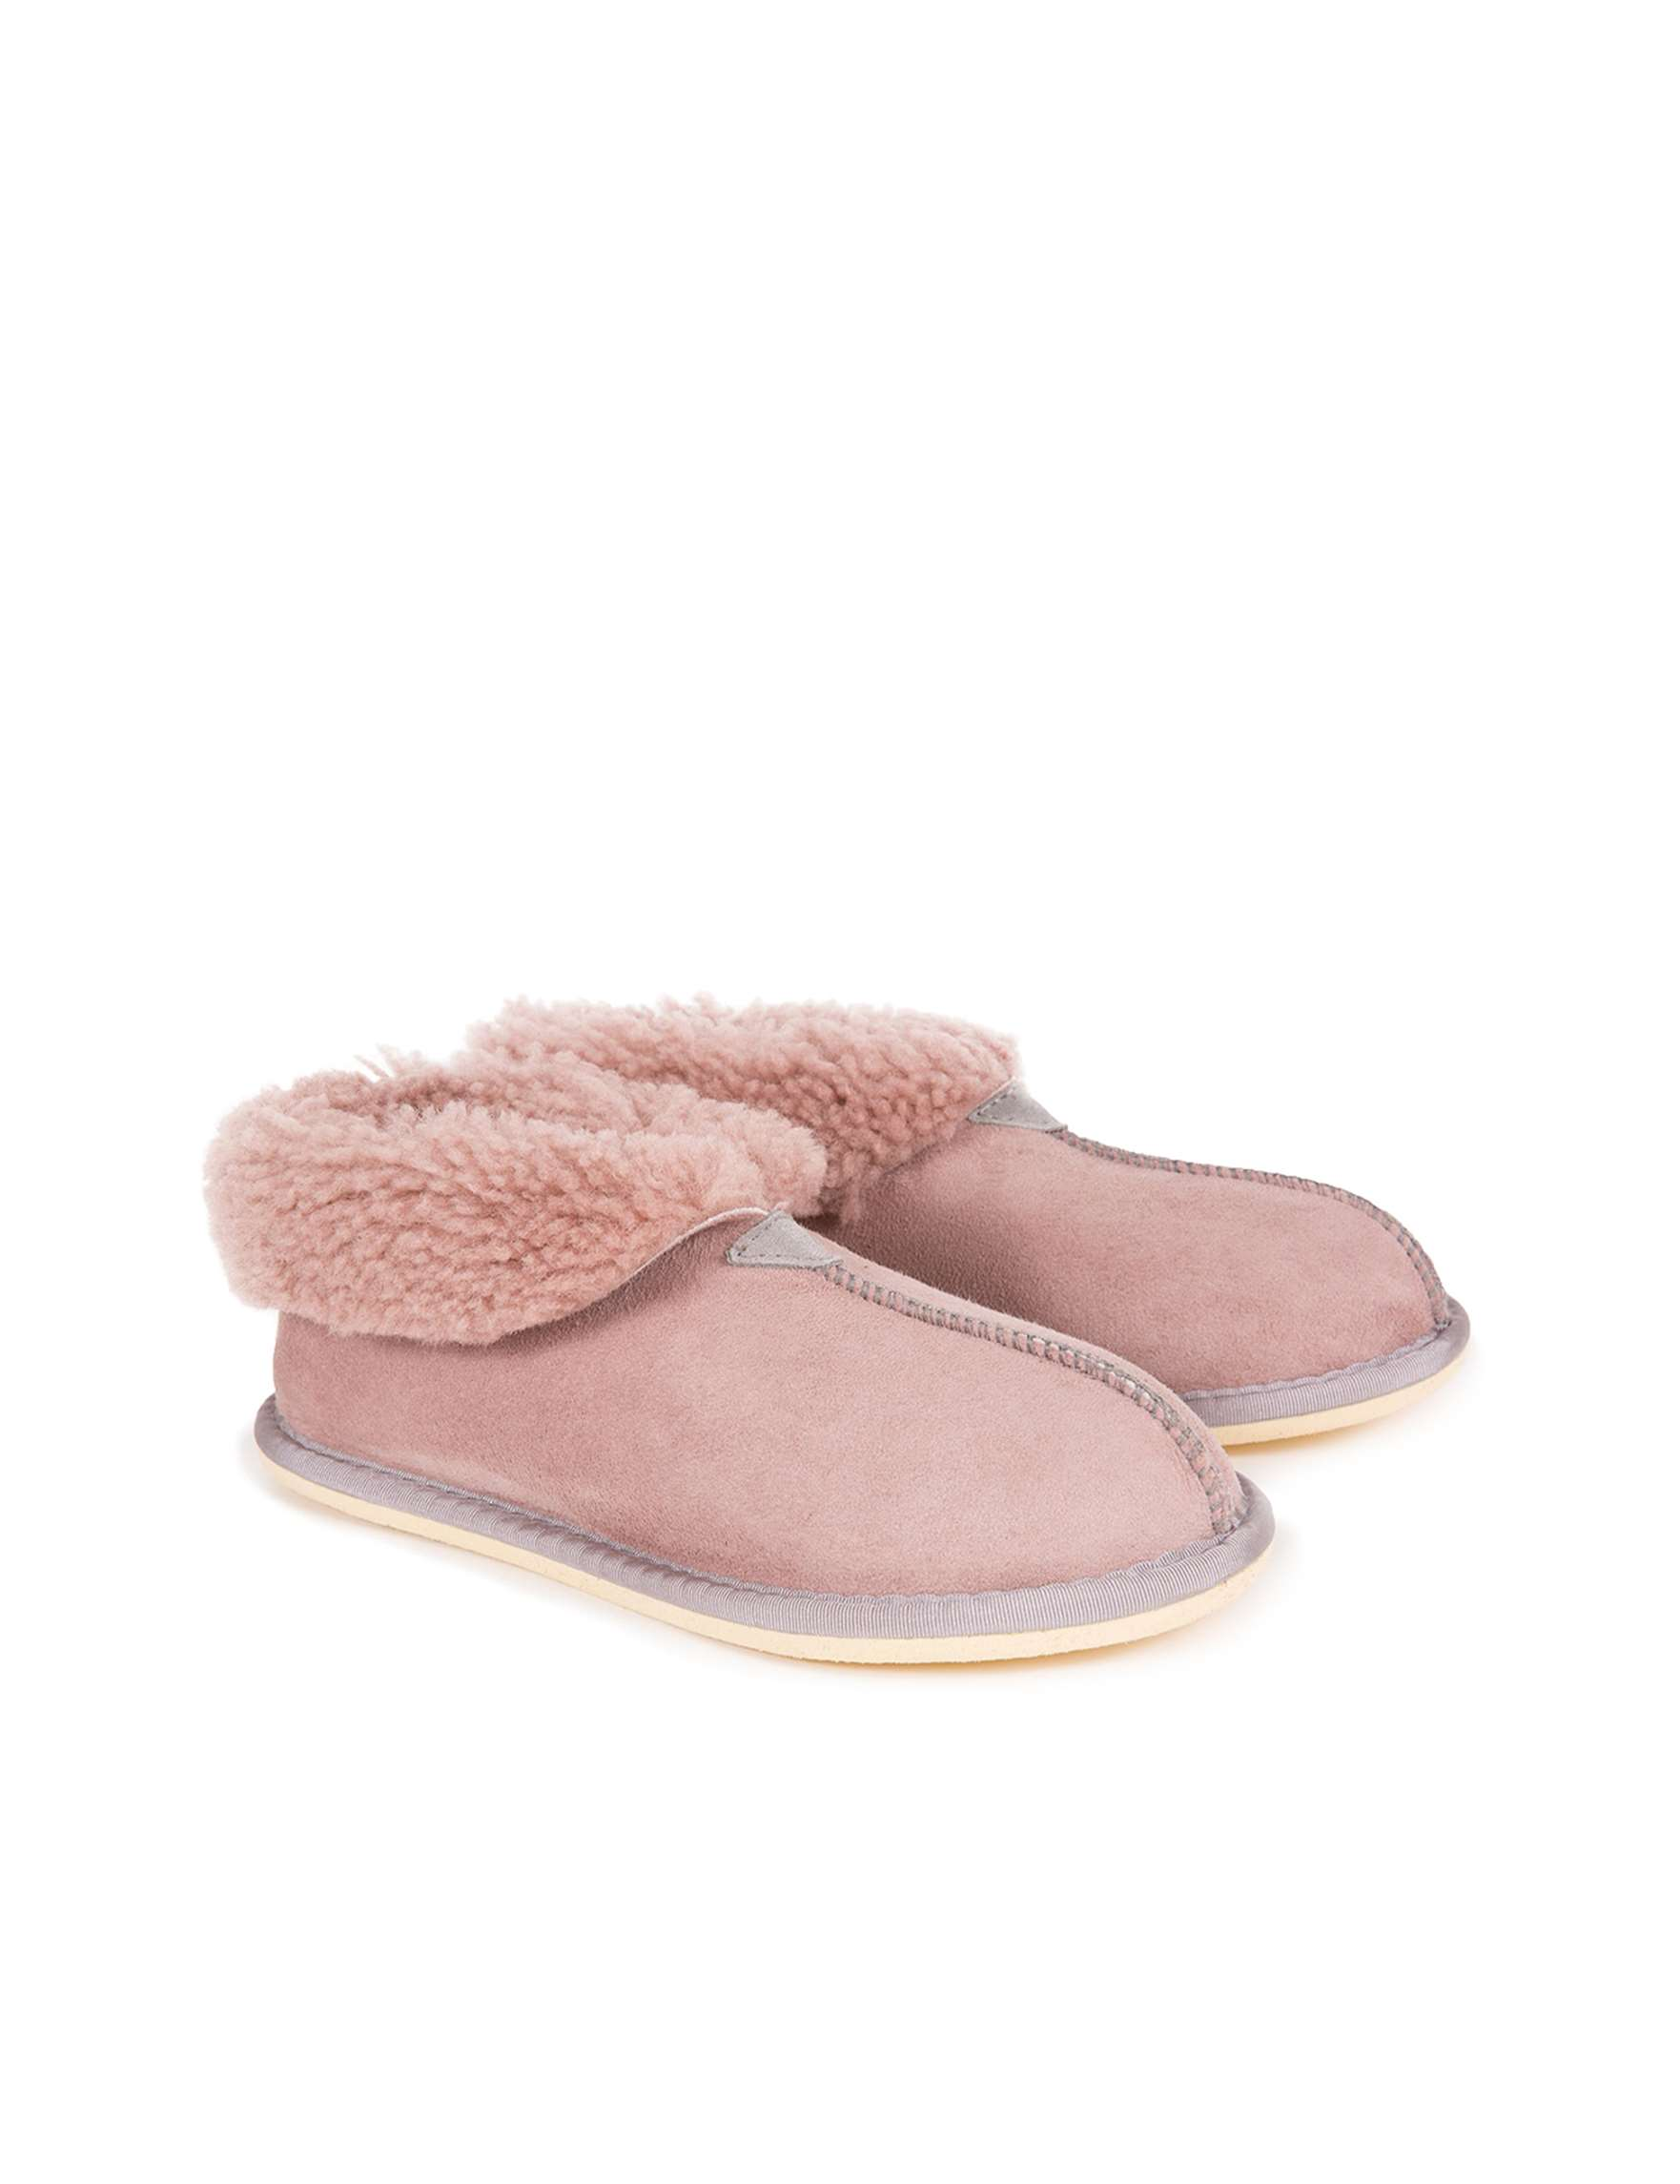 Ladies Bootee Slipper - Dusky Pink - Size 7 - 2505